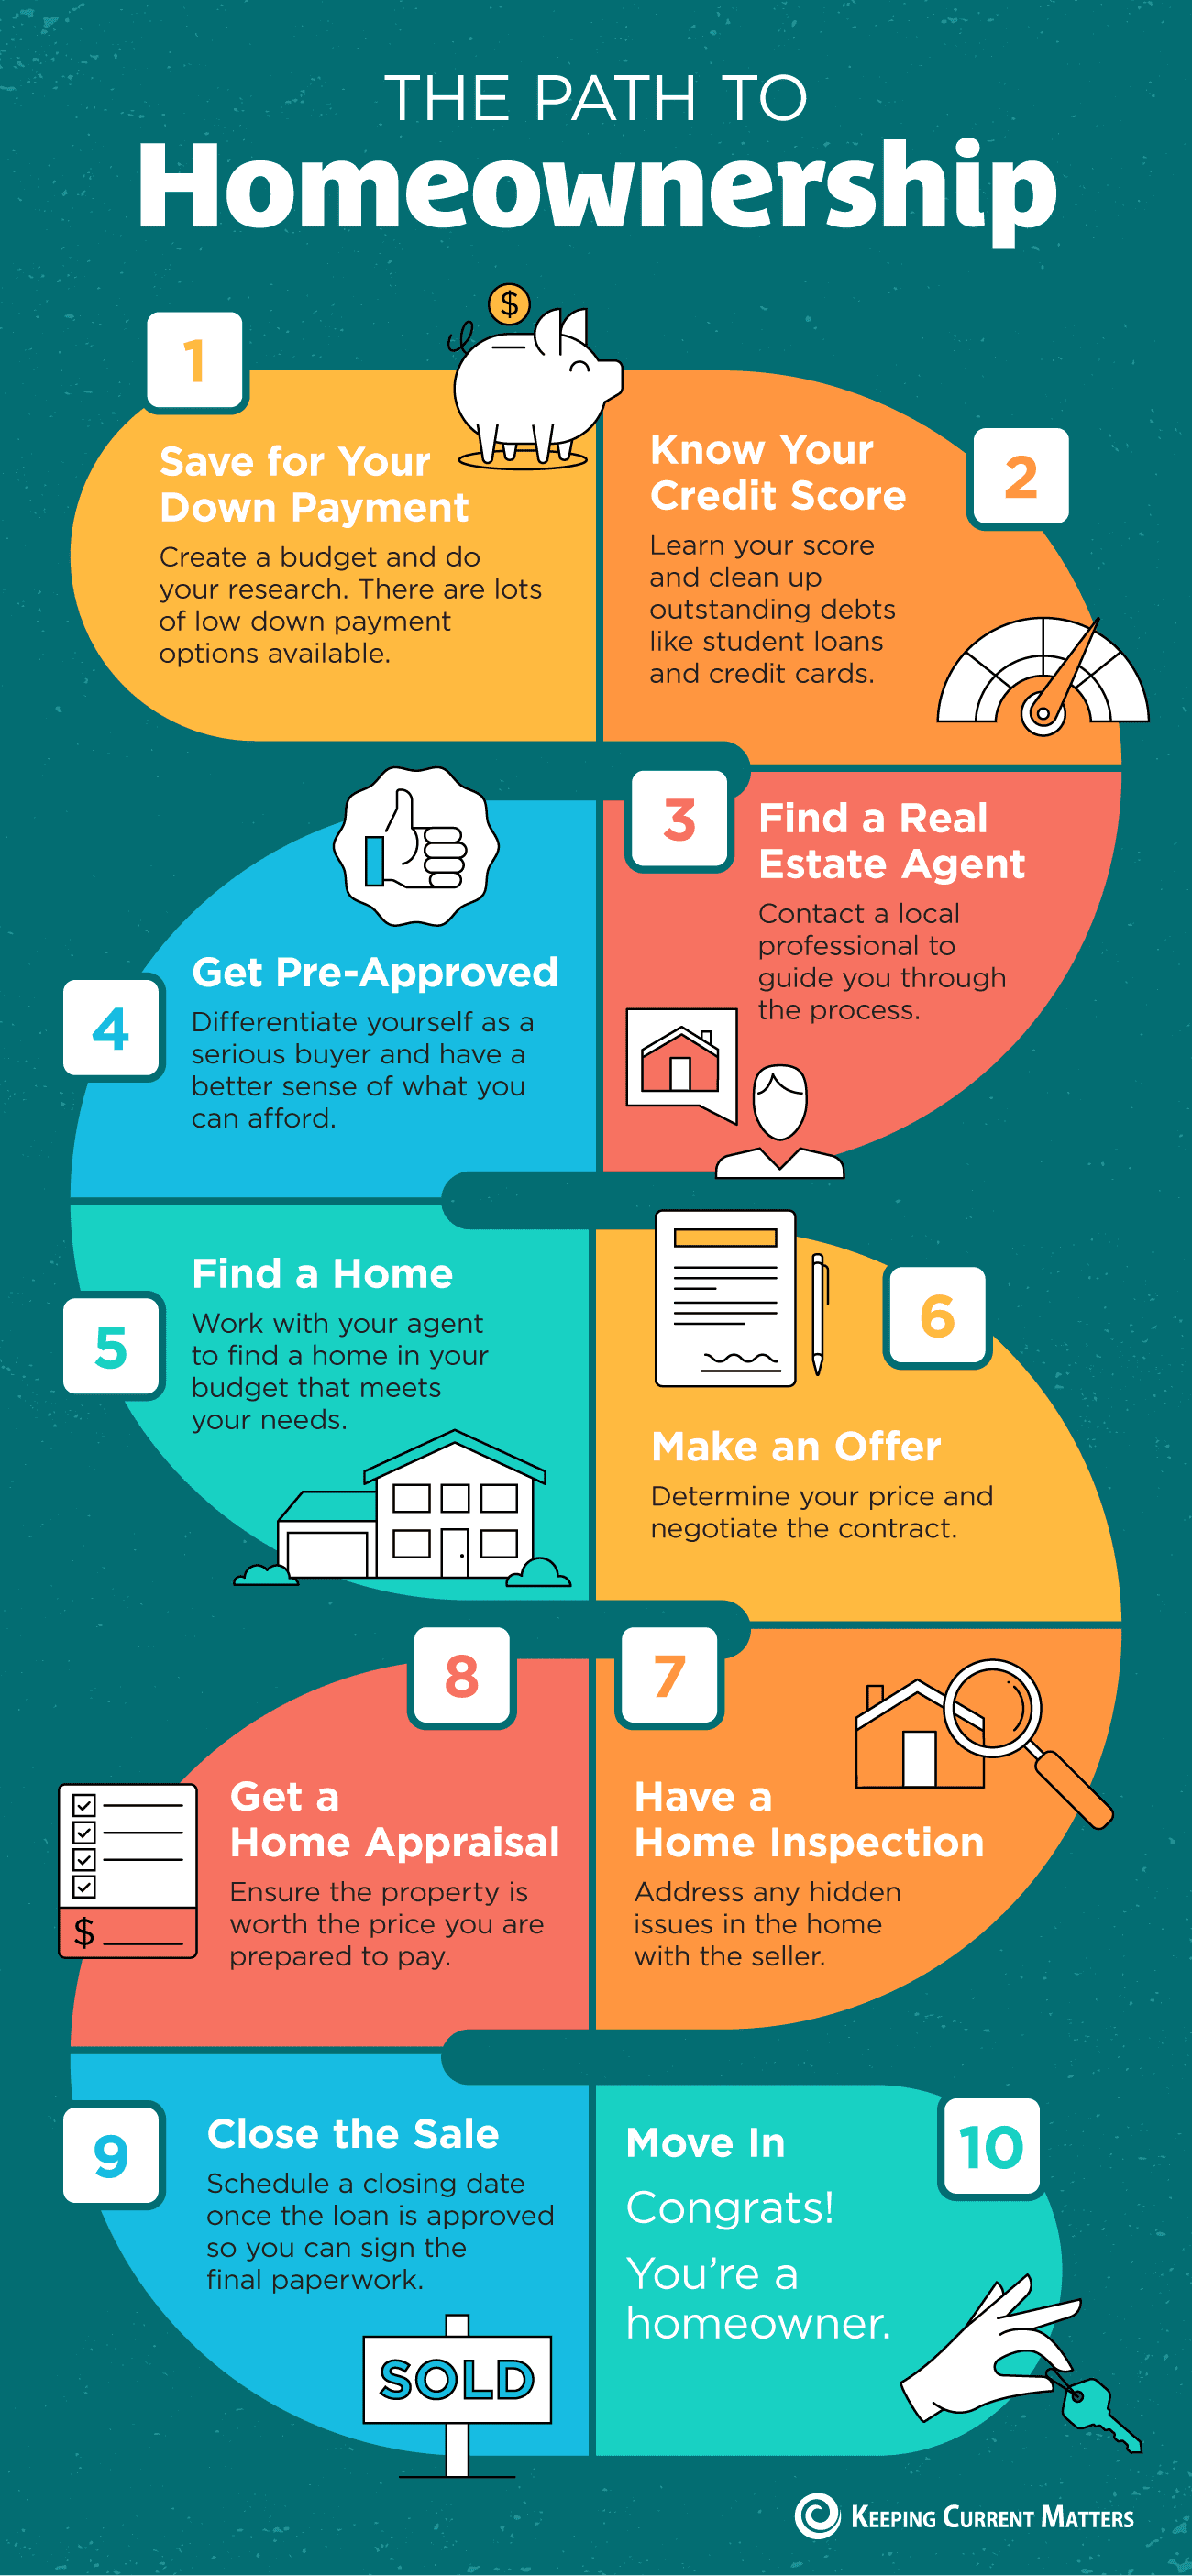 The Path to Homeownership [INFOGRAPHIC] | Keeping Current Matters